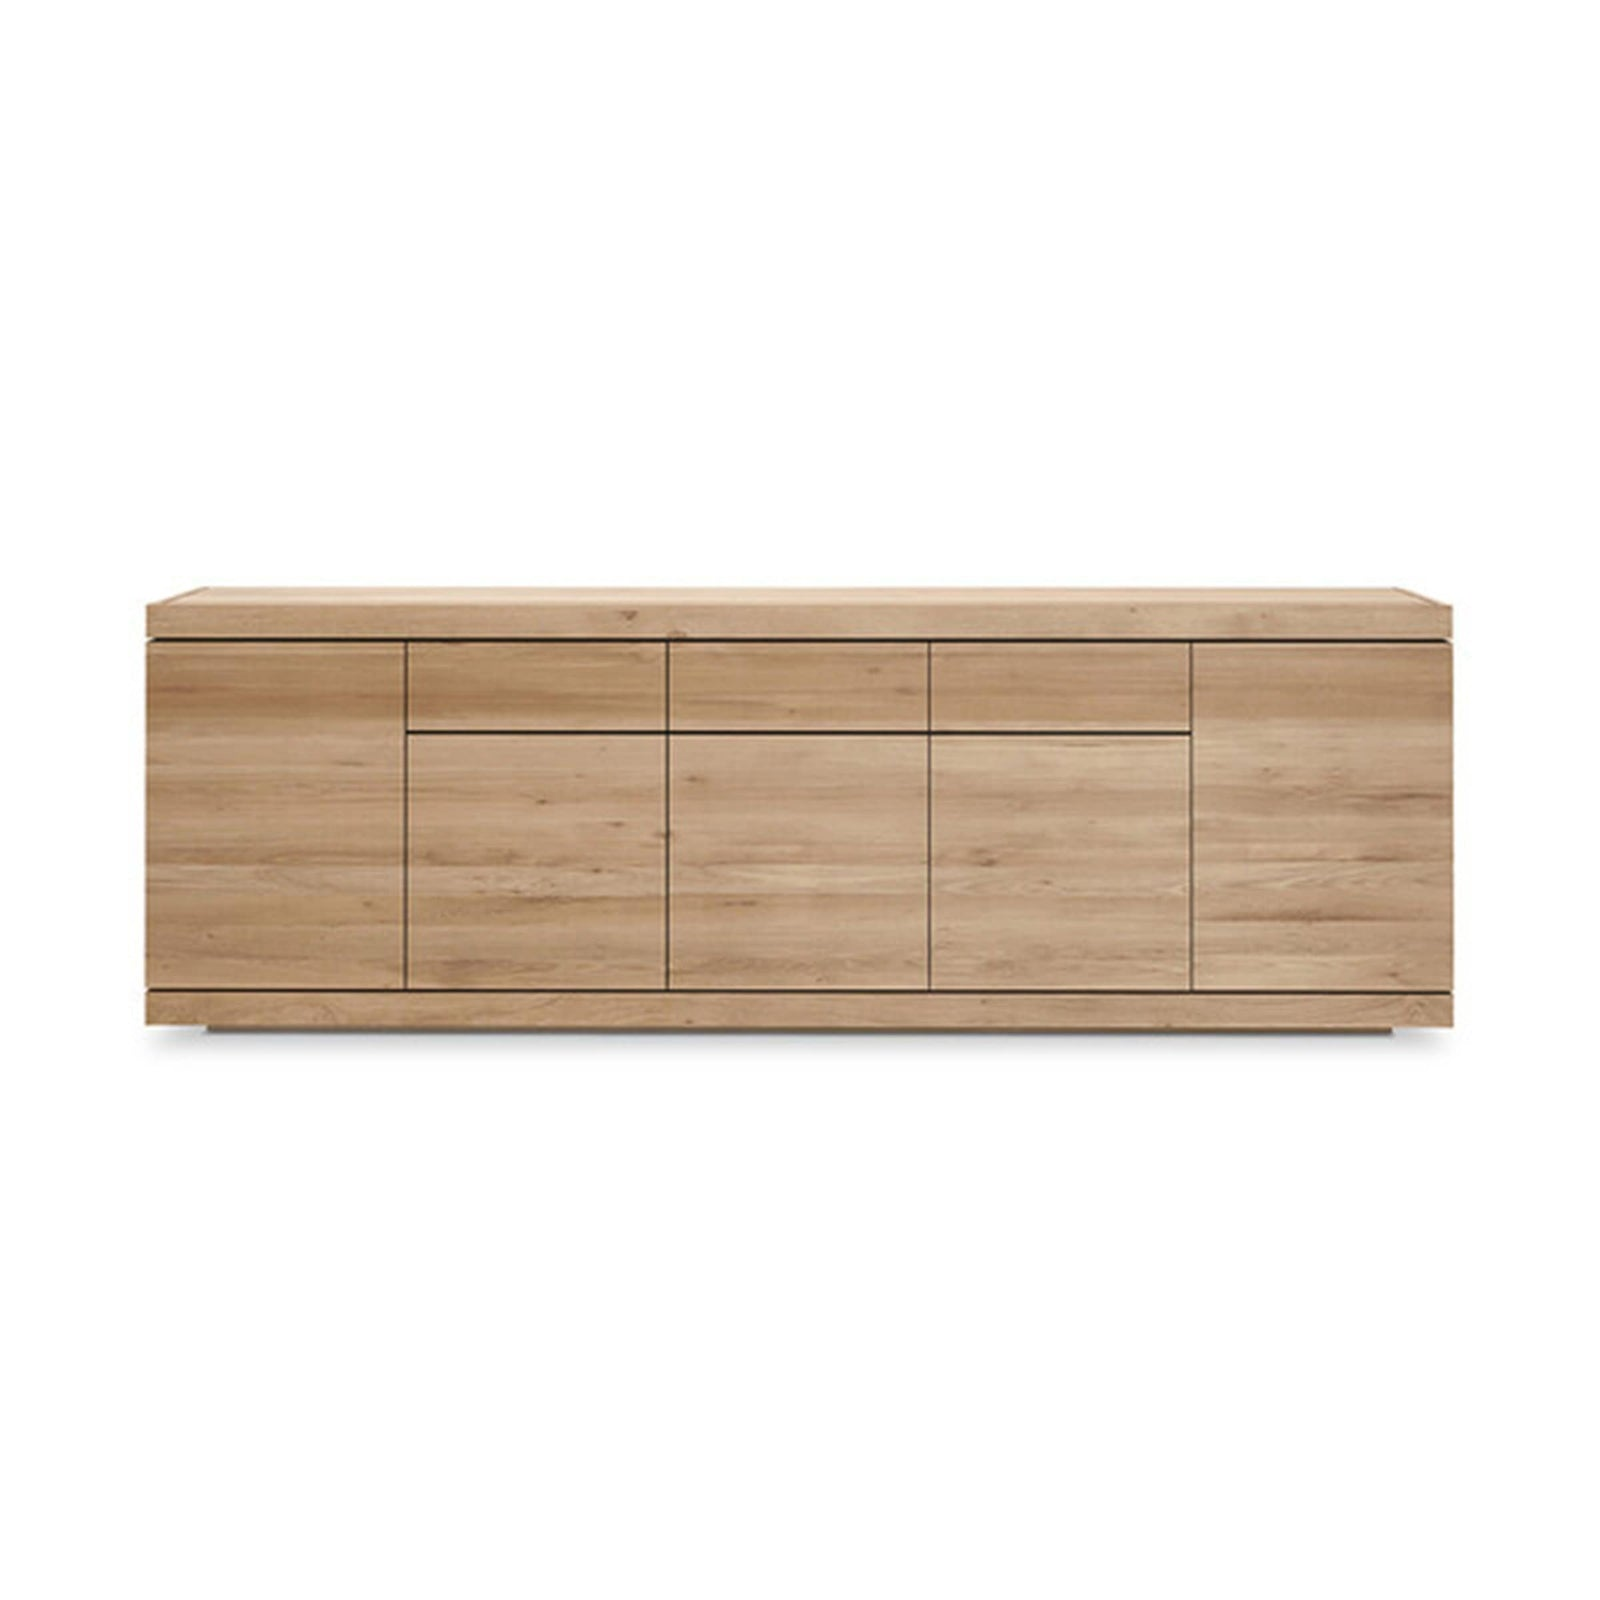 Ethnicraft Furniture 5 Doors / 3 Drawers Oak Burger Sideboard